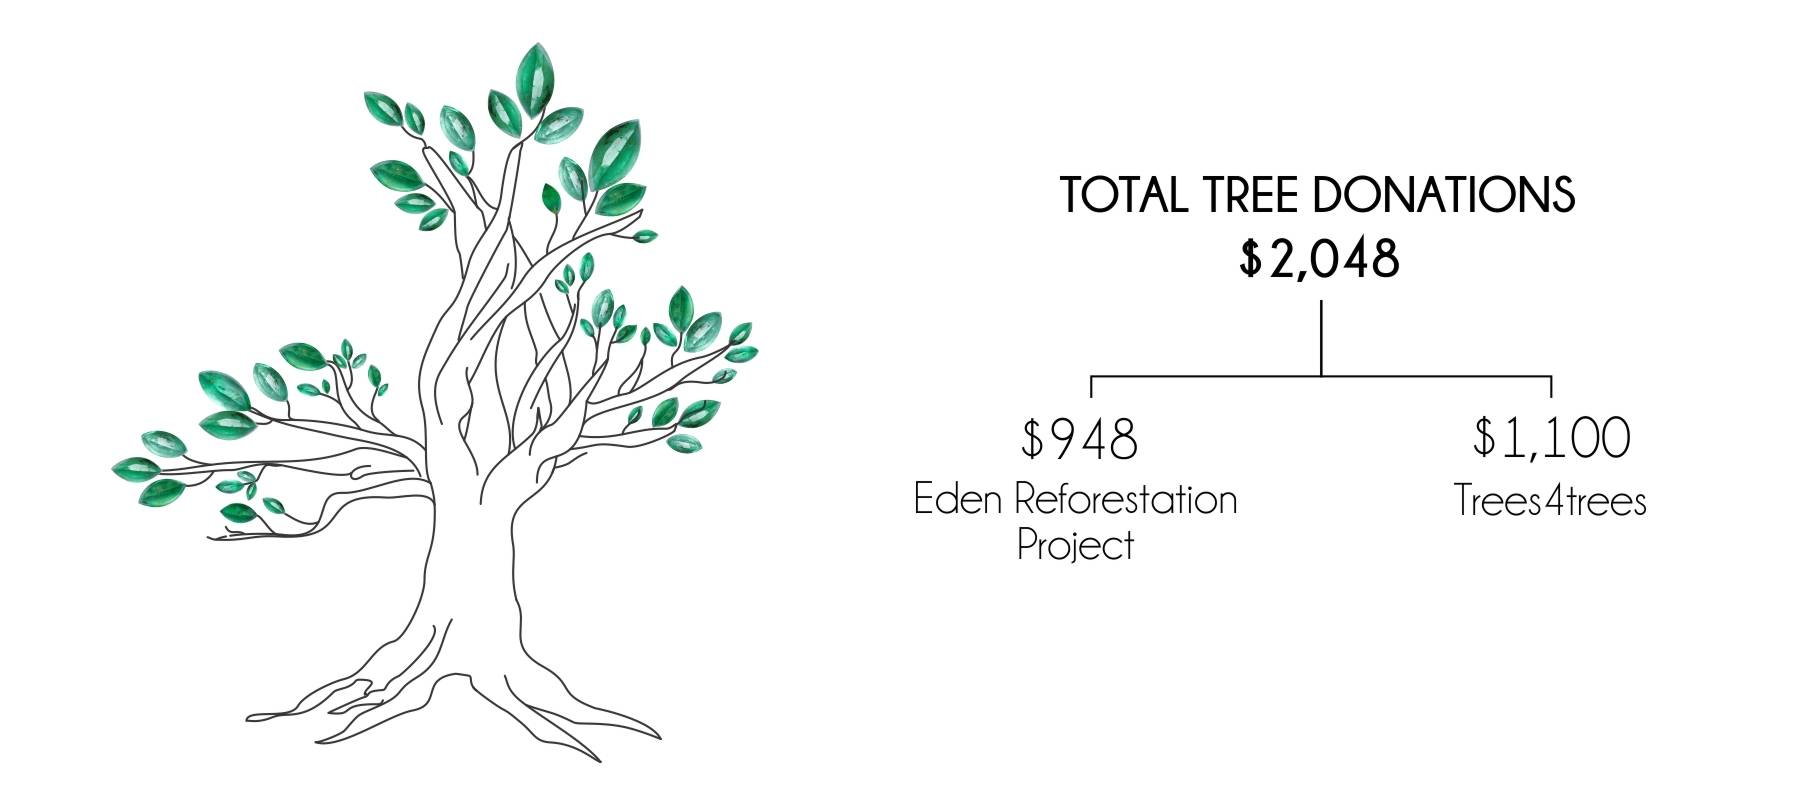 Total tree donations by Gardens of the Sun in the first half of 2020.